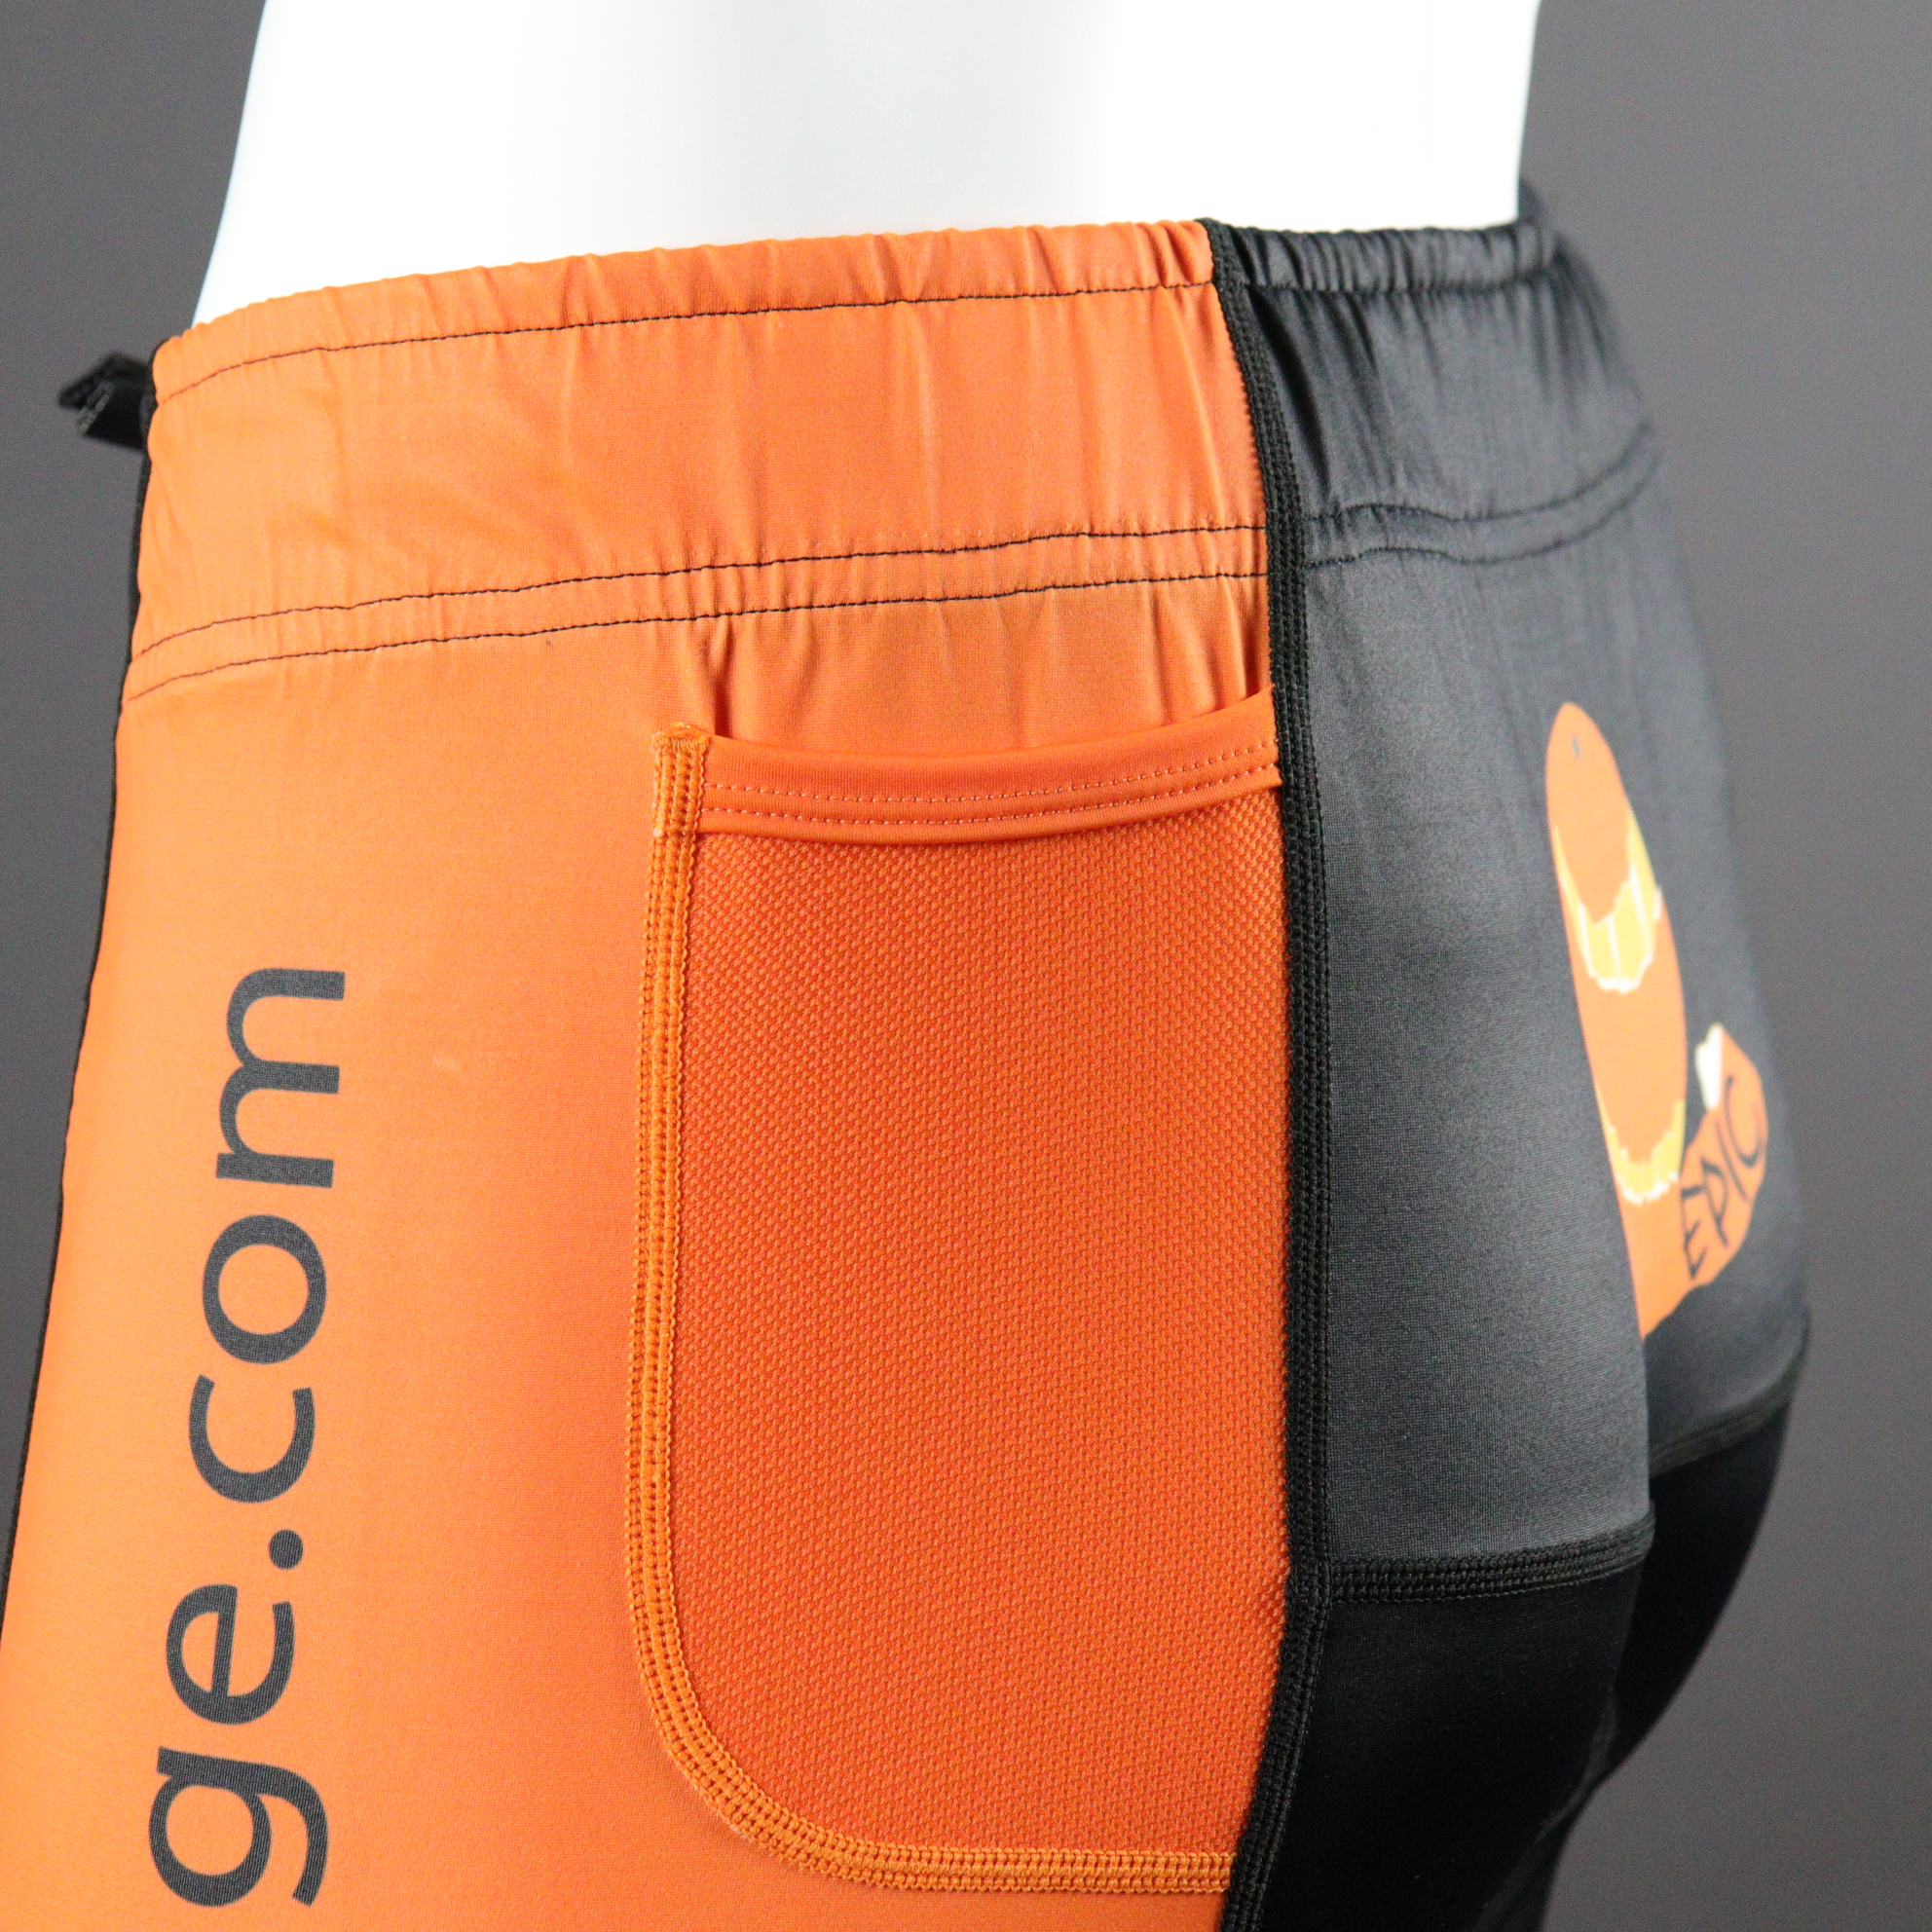 Endurance Tri Shorts - Side Mesh pockets